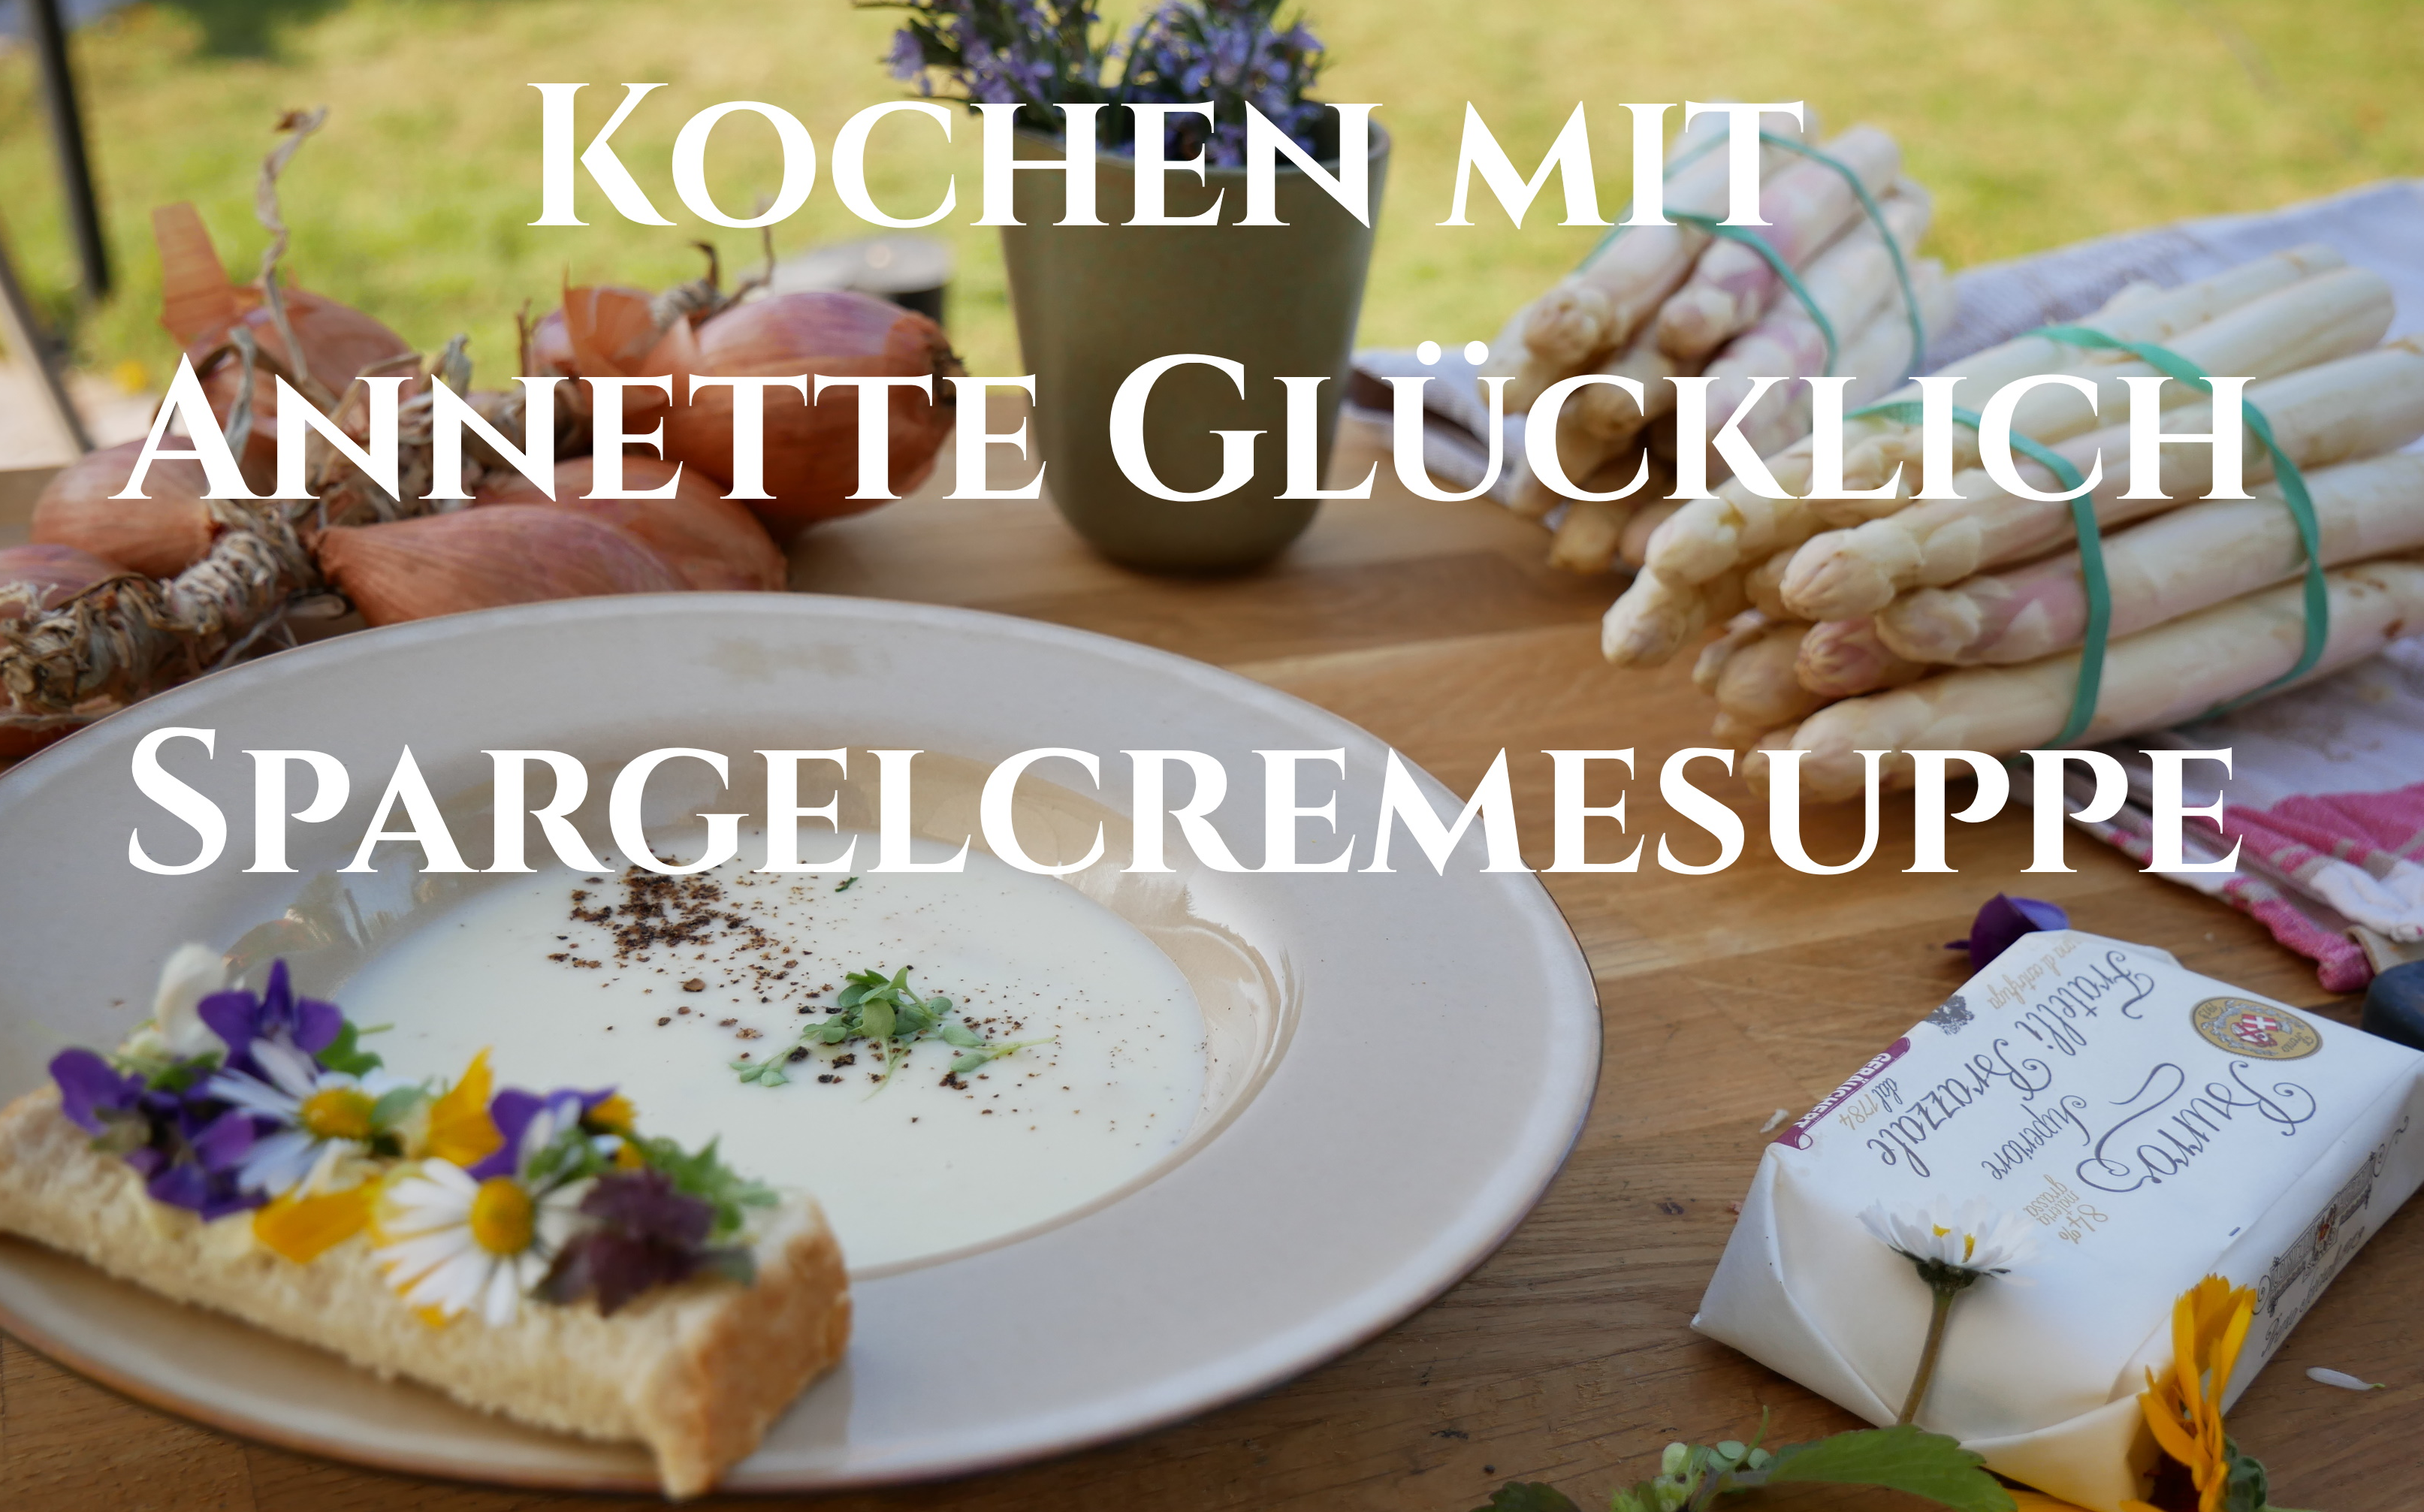 Spargelcremesuppe selbstgemacht